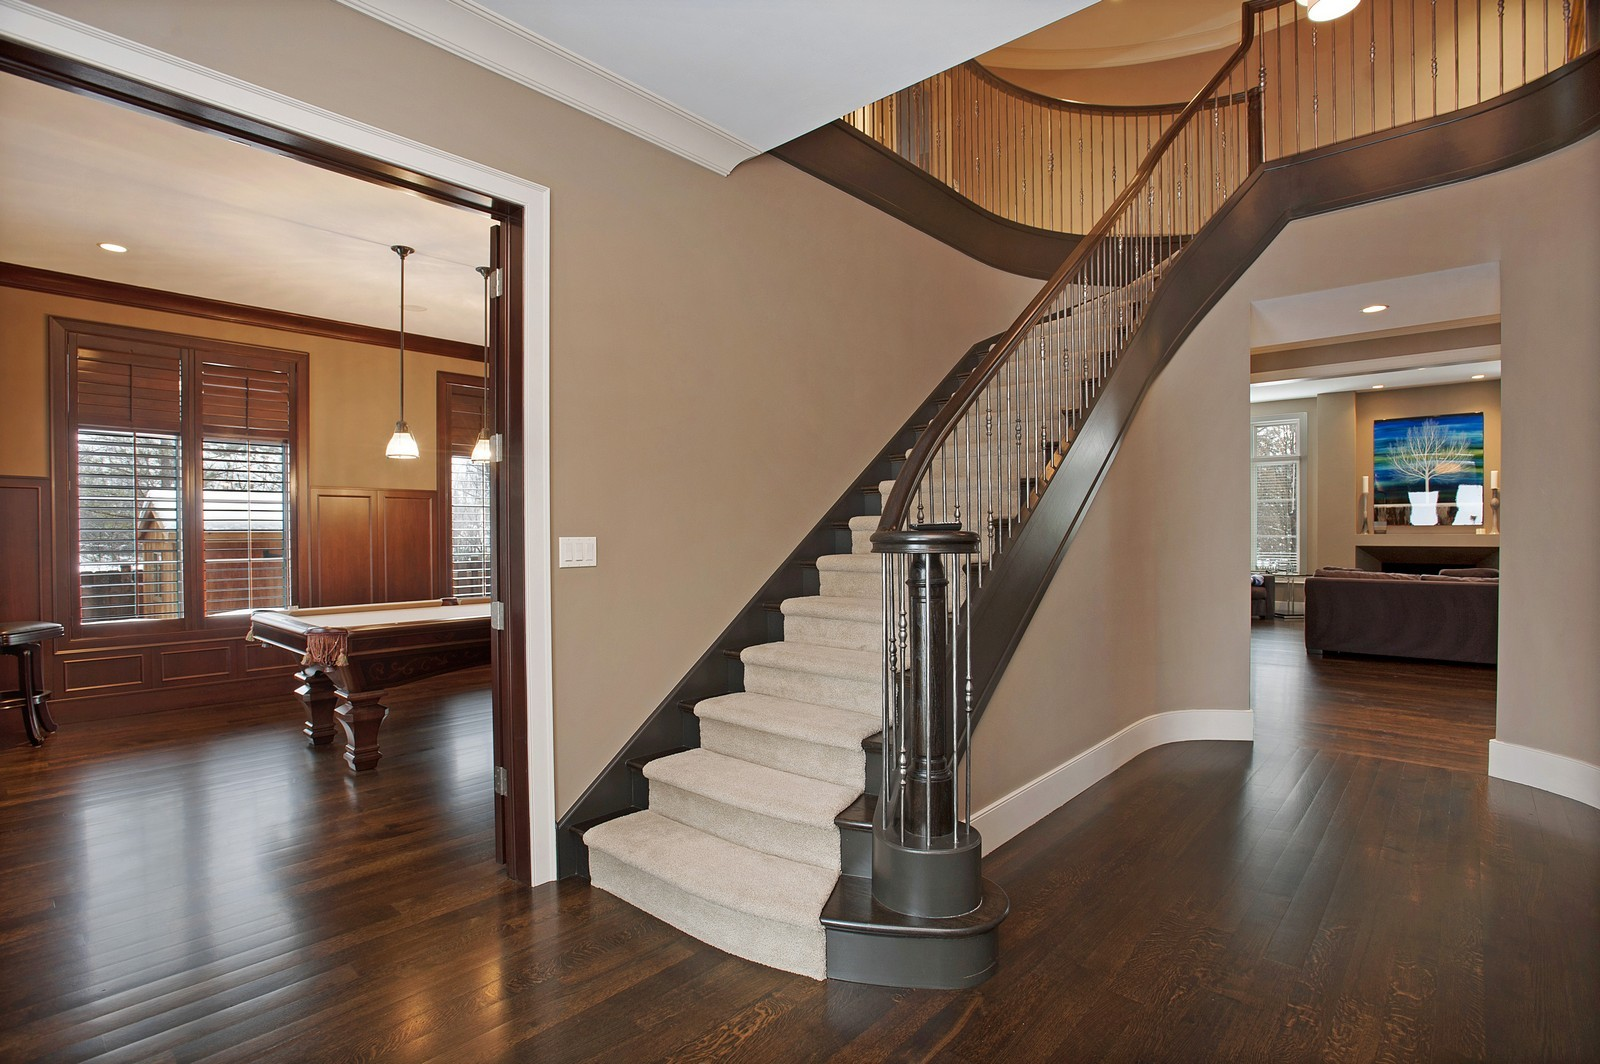 Real Estate Photography - 1715 Cloverdale Ave, Highland Park, IL, 60035 - Foyer